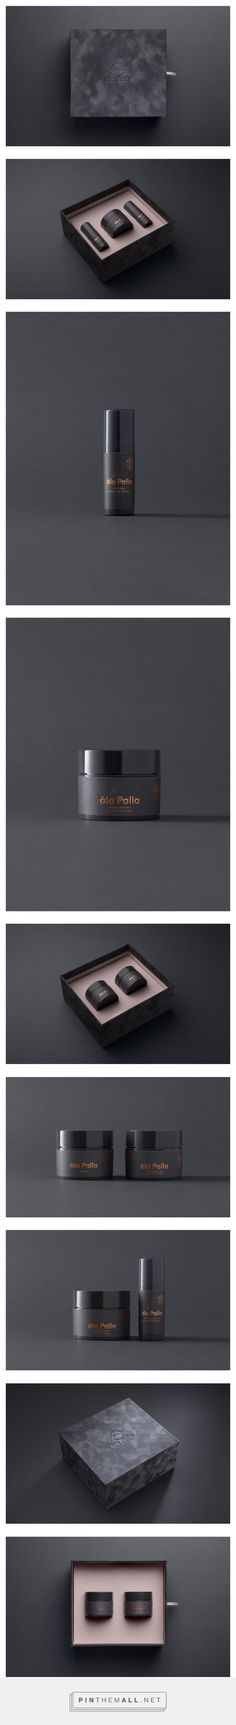 àla Palla Cosmetics Packaging by Studio Goat | Fivestar Branding Agency – Design and Branding Agency & Curated Inspiration Gallery #packaging #packagingdesign #packagedesign #package #design #designinspiration #Cosmetics